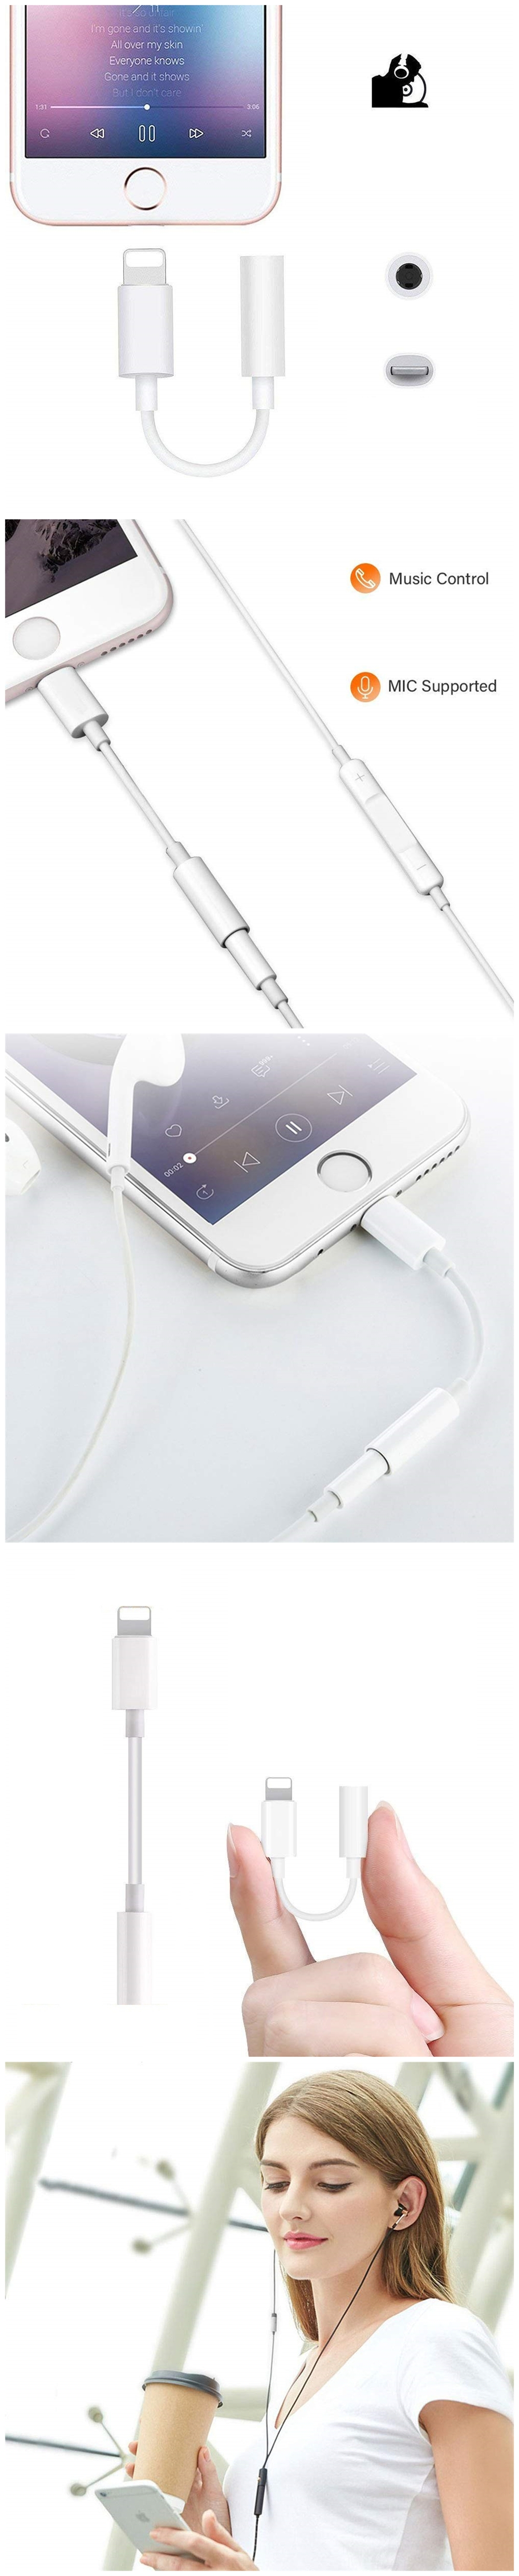 3.5mm Jack Aux Earphone Audio Adapter Cable for iPhone 7 Plus / 7  and for iOS 10.2 Below- White